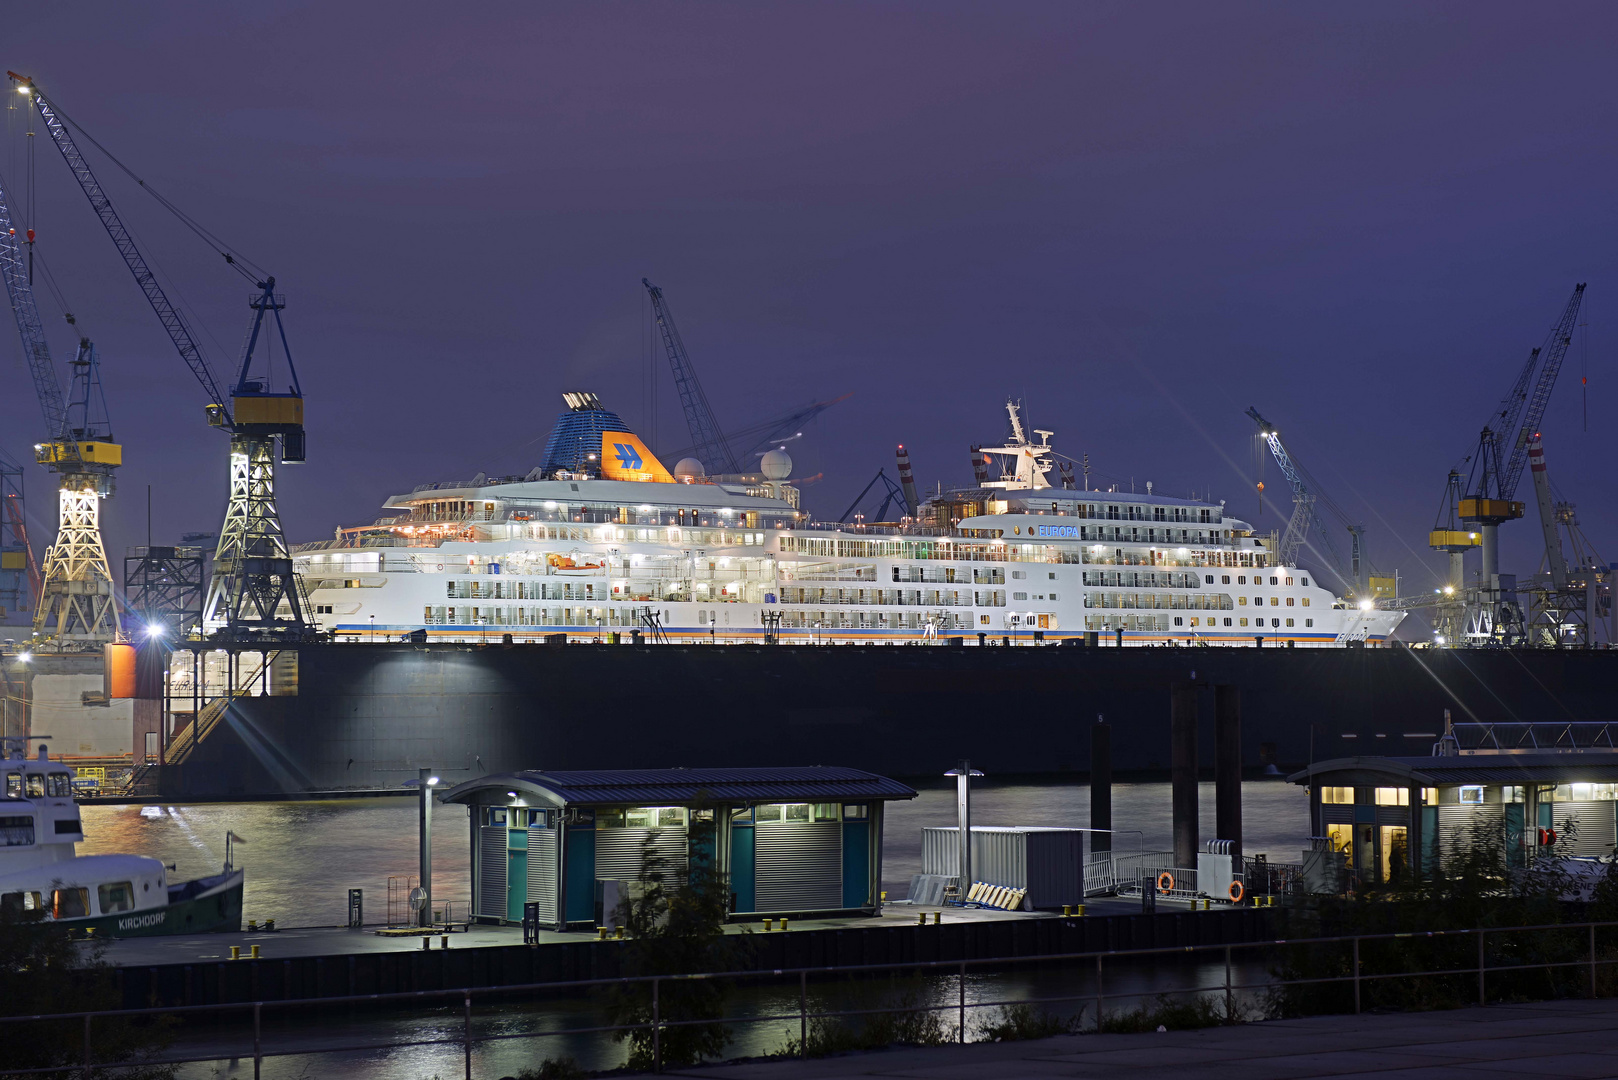 MS Europa during her stay at Blohm+Voss